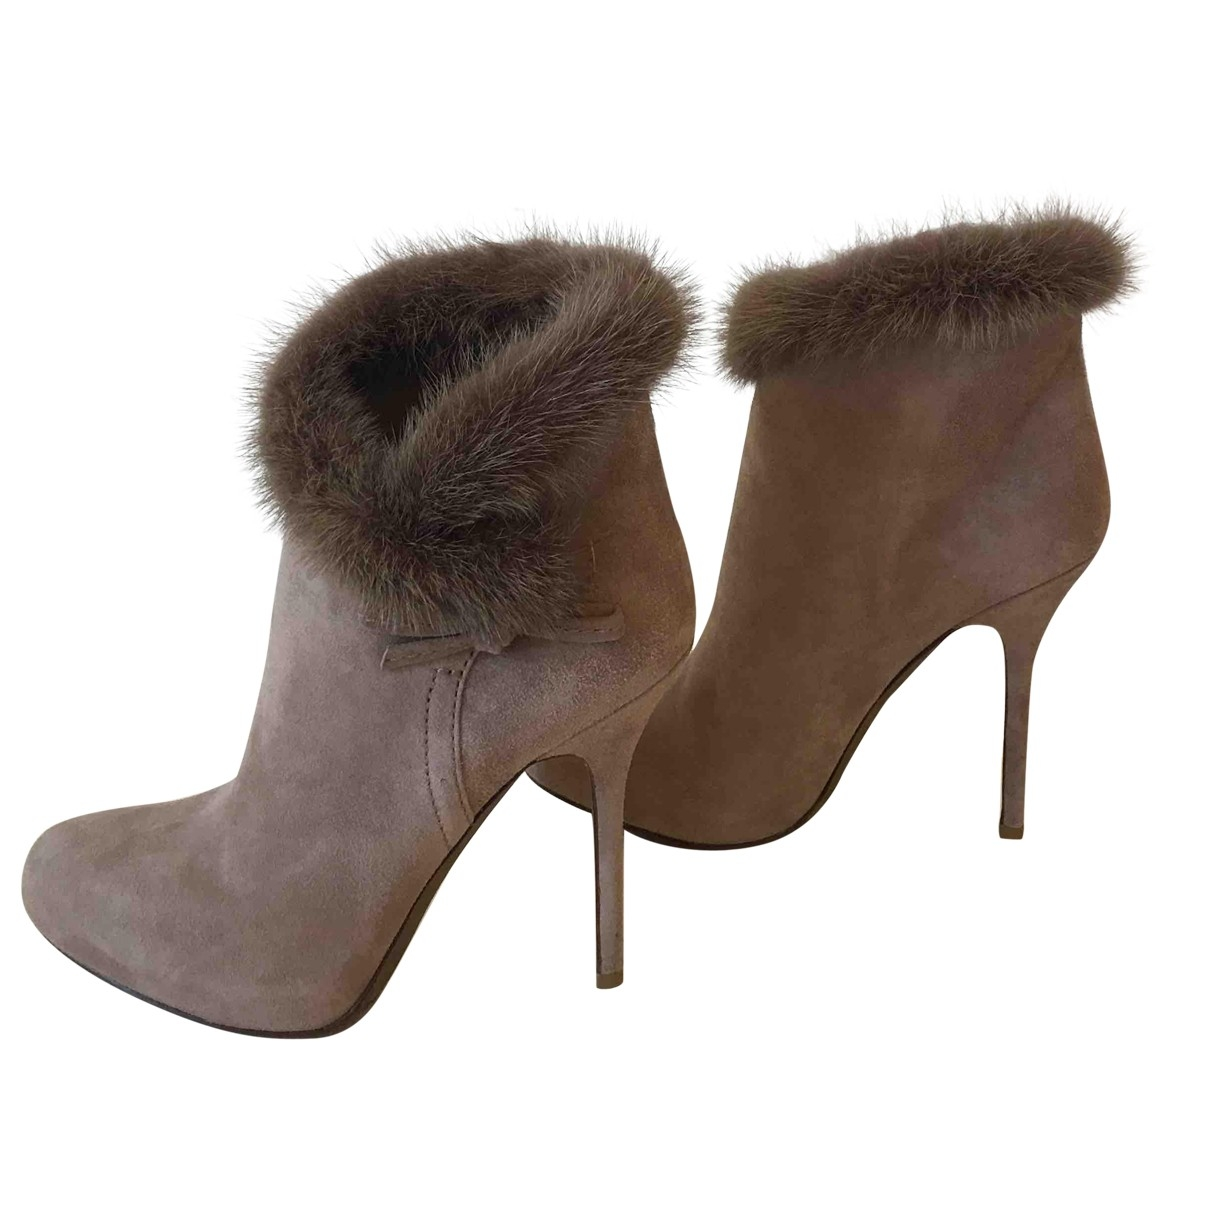 Dior \N Beige Suede Ankle boots for Women 36.5 EU